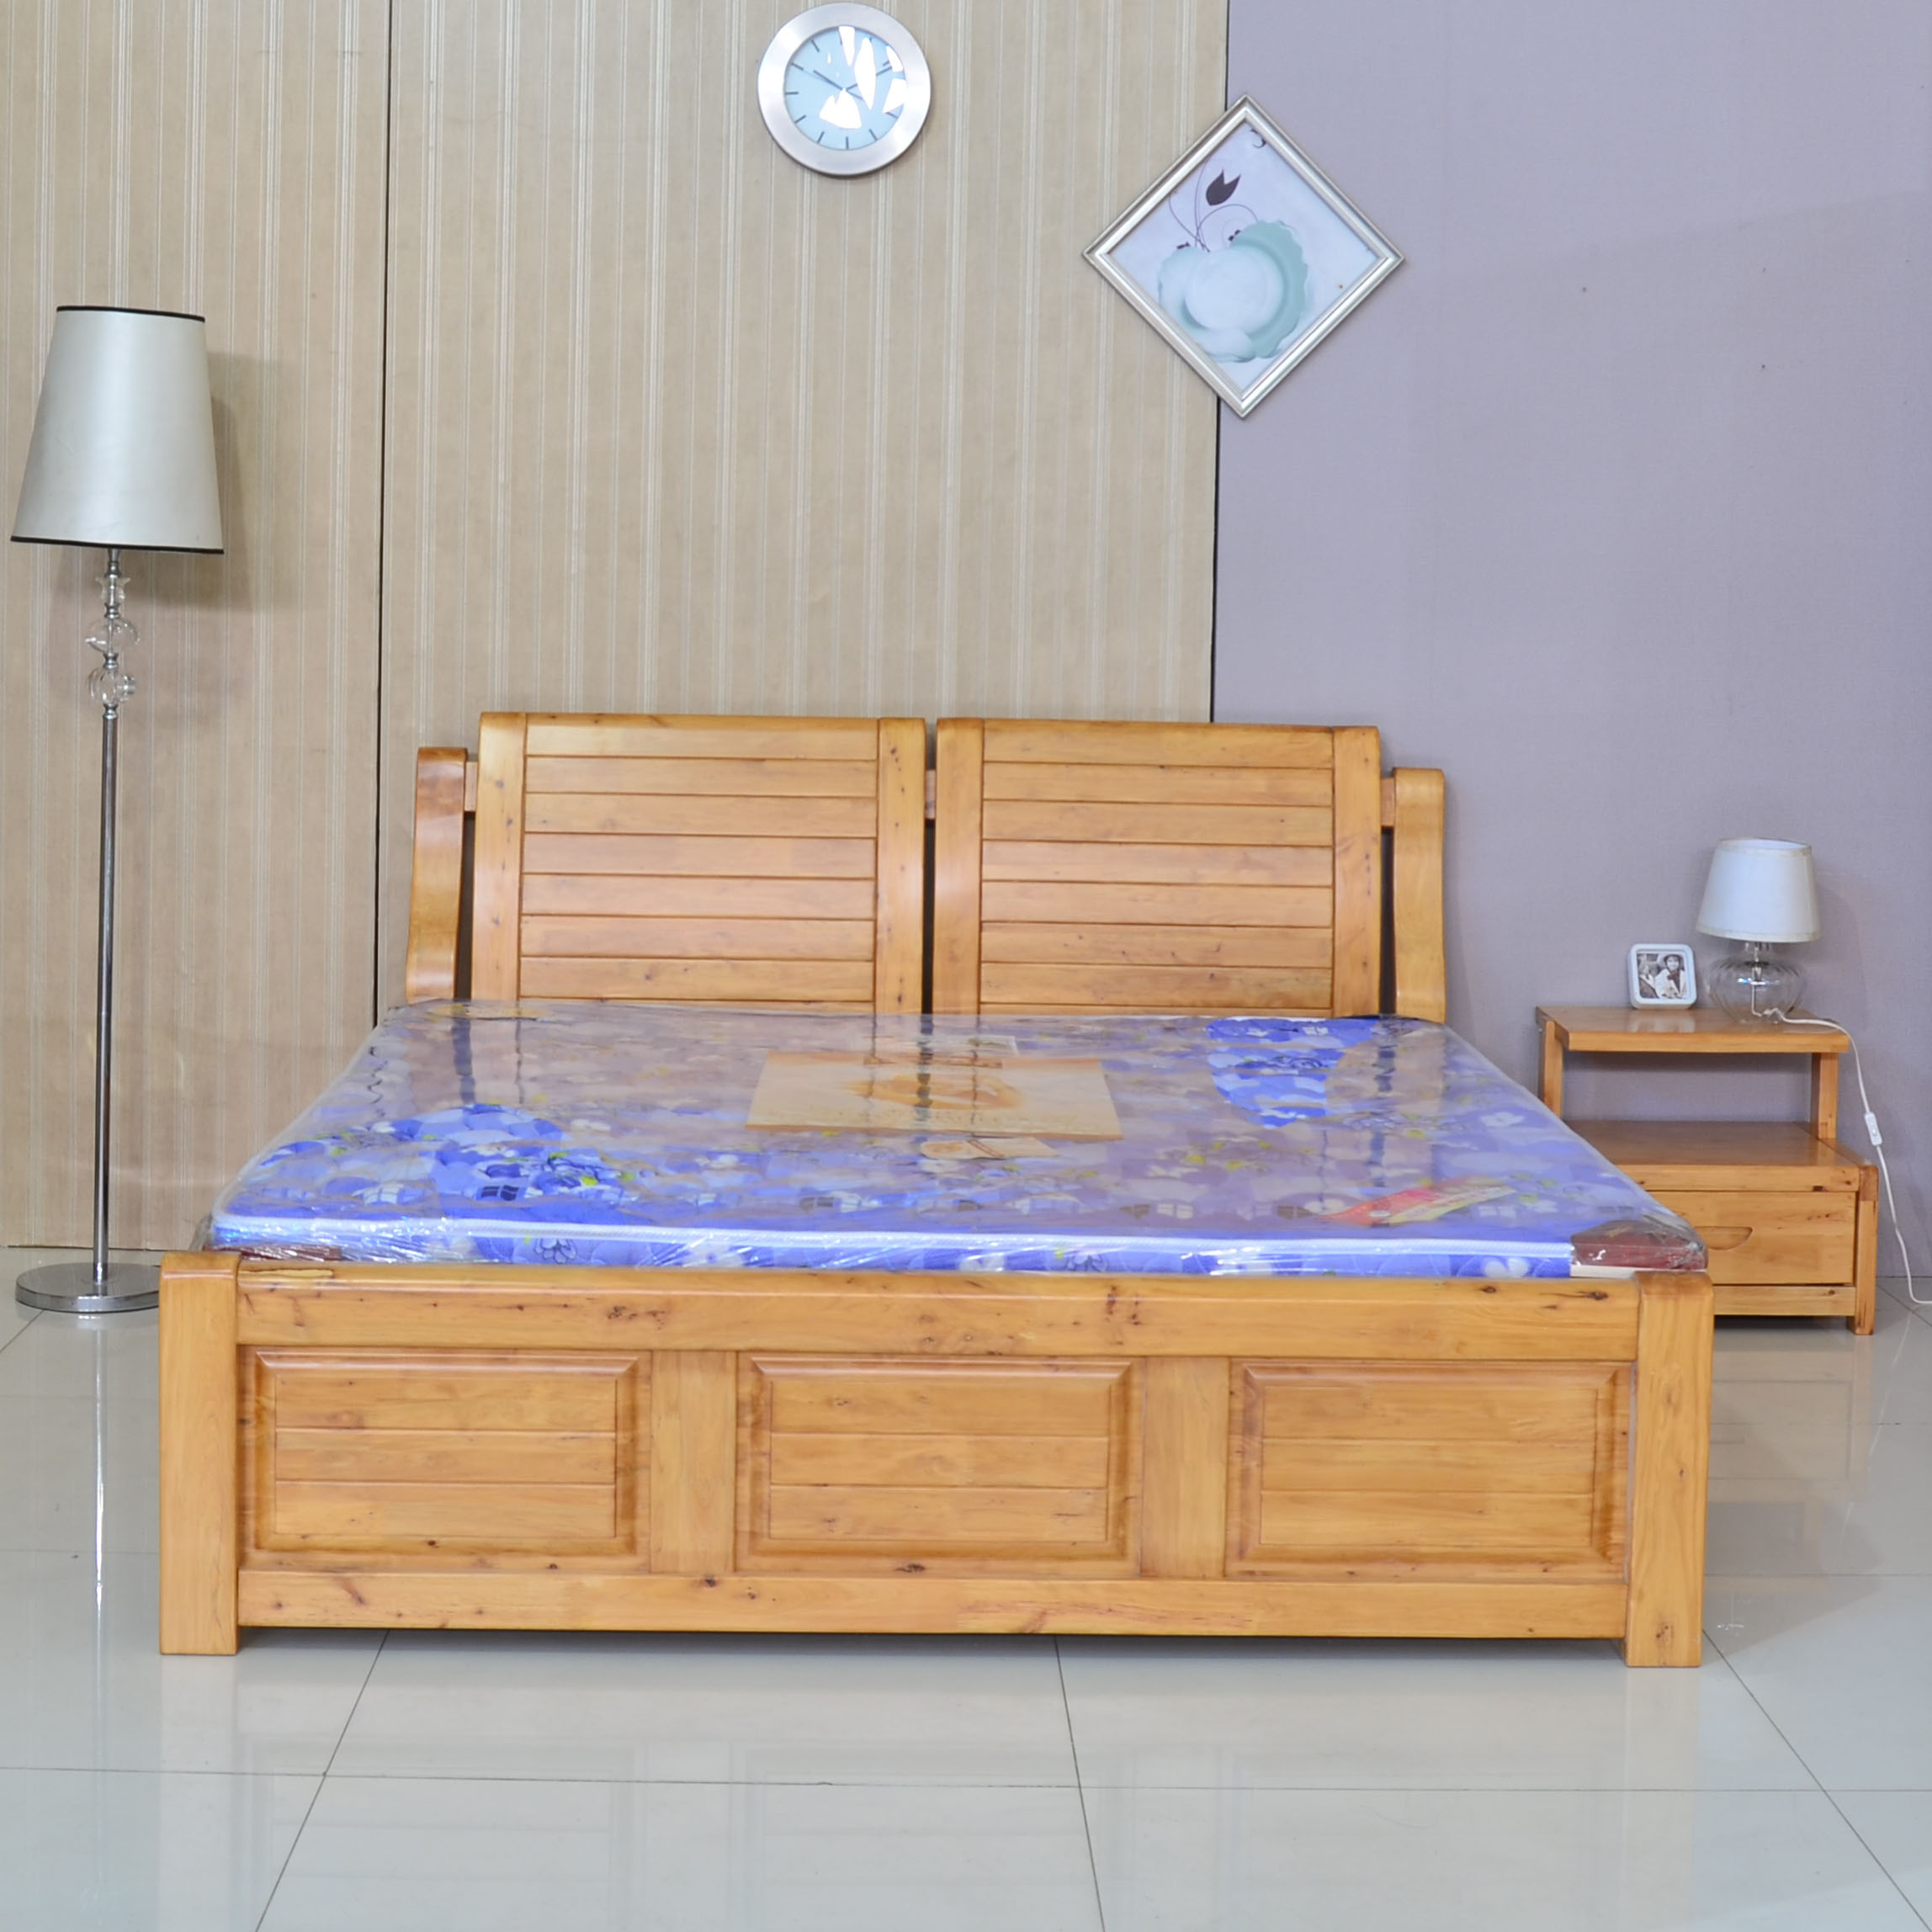 Solid wood furniture 1.8 m double minimalist modern adult category of cypress wood colors m bed marriage bed continental bed category